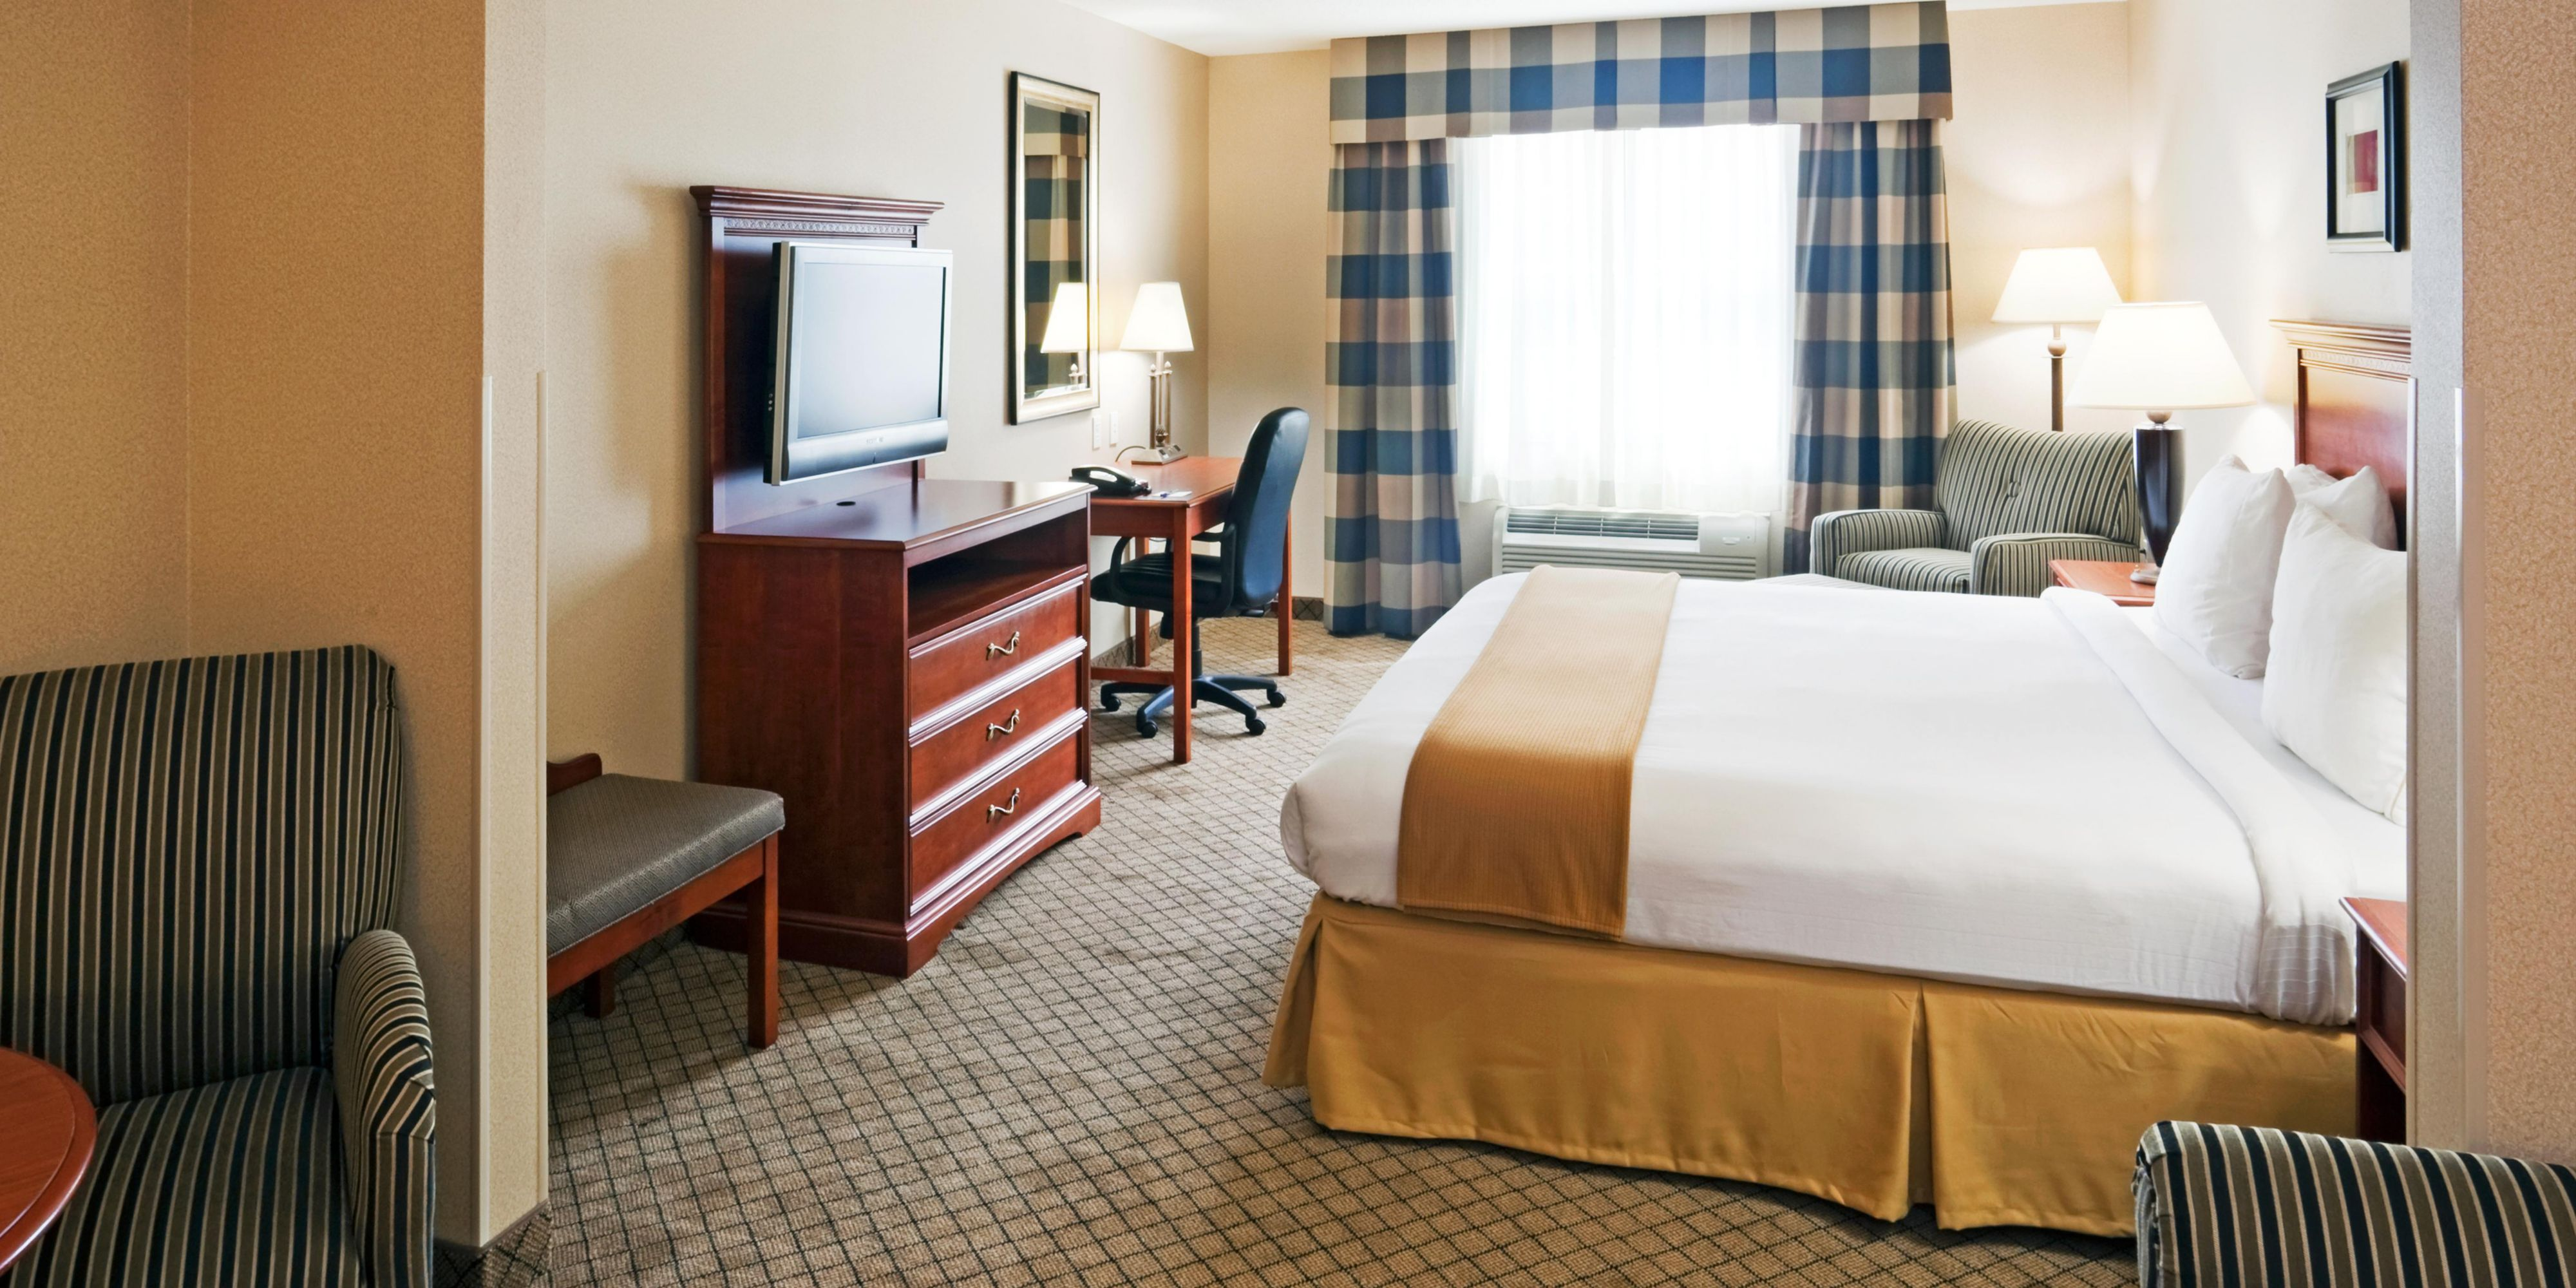 Holiday Inn Express And Suites Seabrook 2533367644 2x1